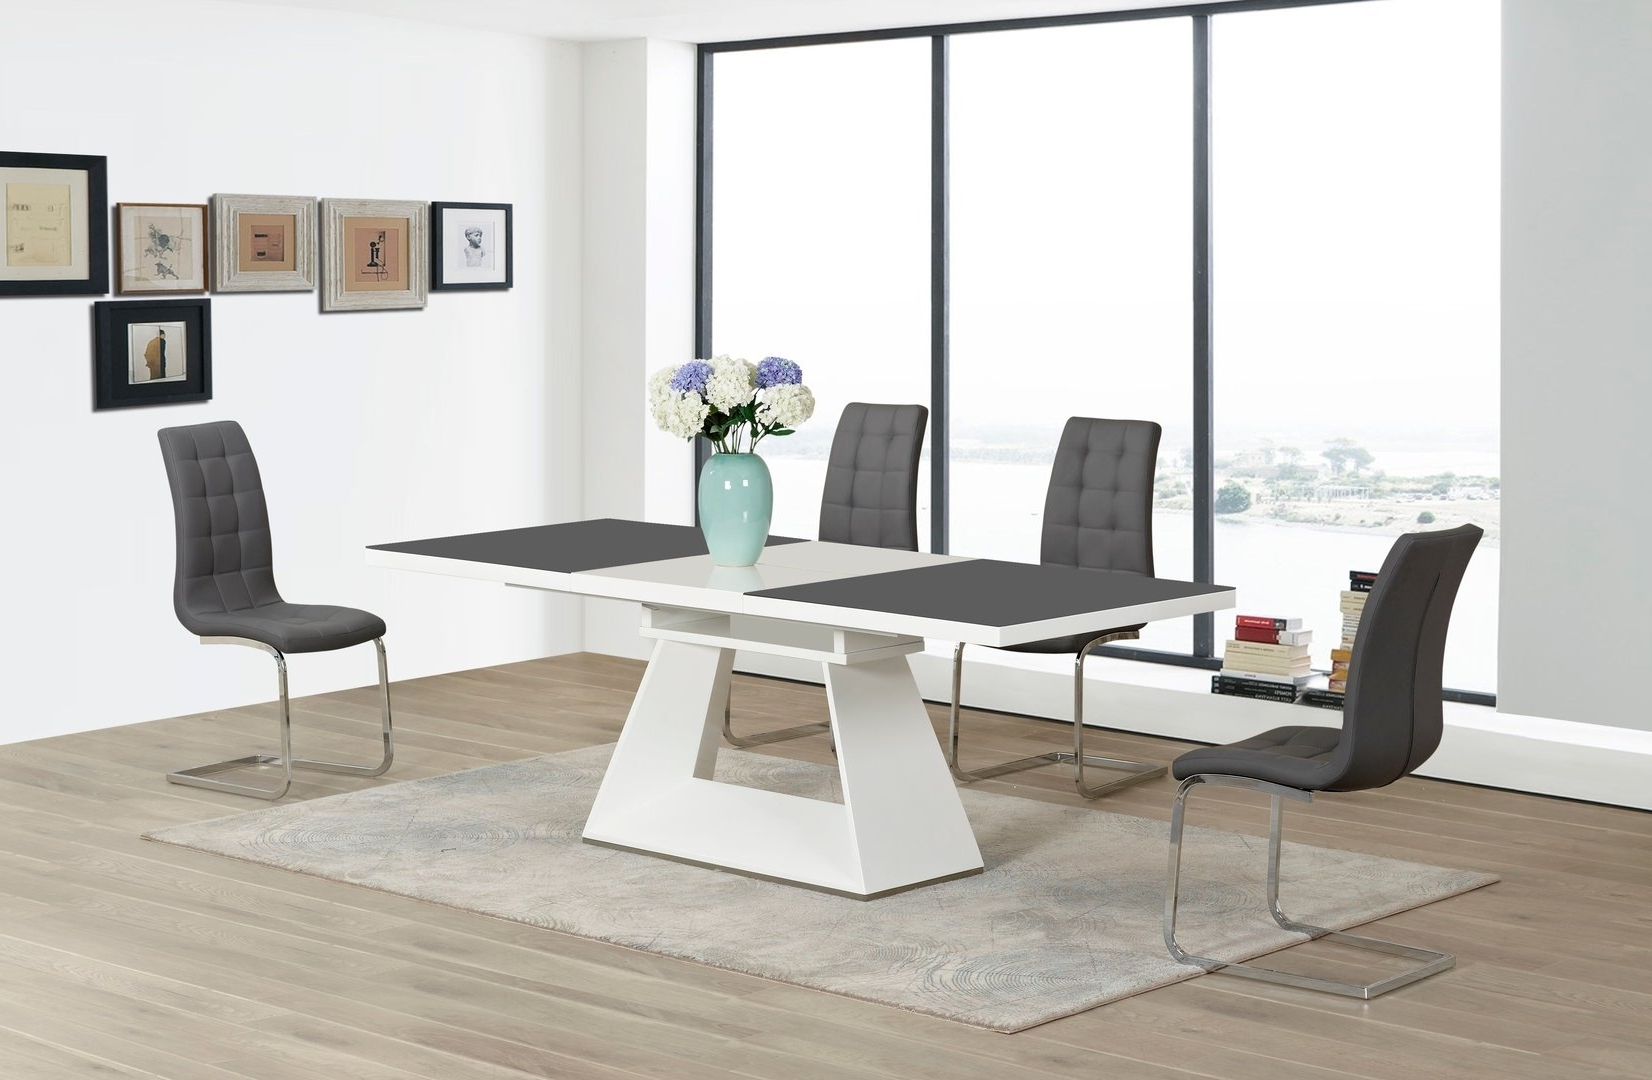 Extendable Dining Tables And 6 Chairs Intended For Trendy Extending Dining Table Sets Uk – Castrophotos (View 24 of 25)